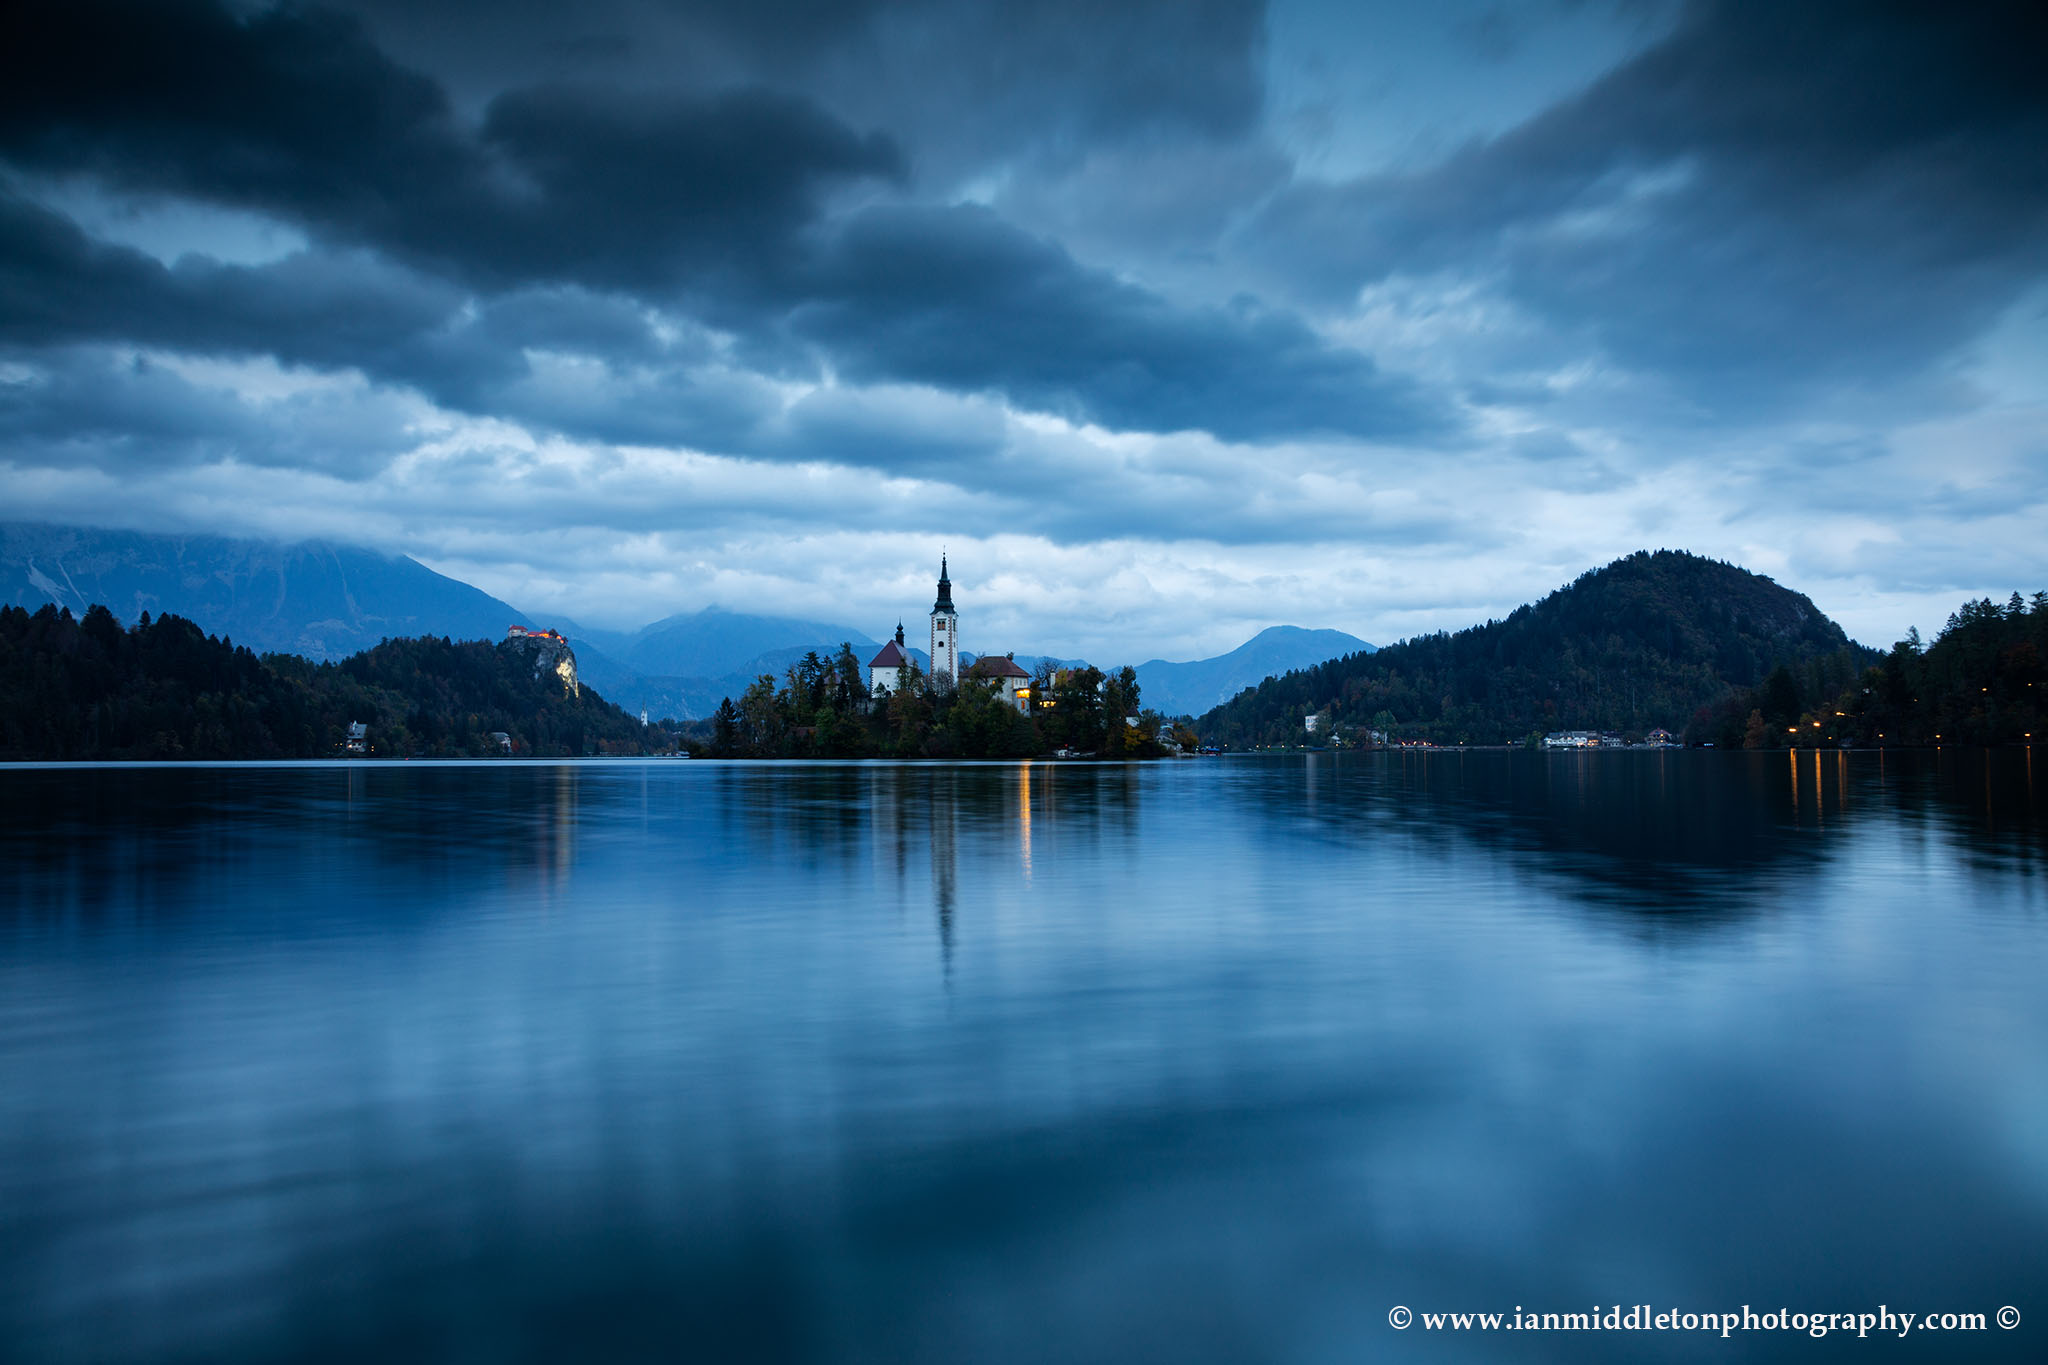 View across the beautiful Lake Bled, island church and hilltop castle at dusk with the beautiful Karavanke mountains in the background, Slovenia. Lake Bled is Slovenia's most popular tourist destination and the Karavanke mountains form the border between Slovenia and Austria.